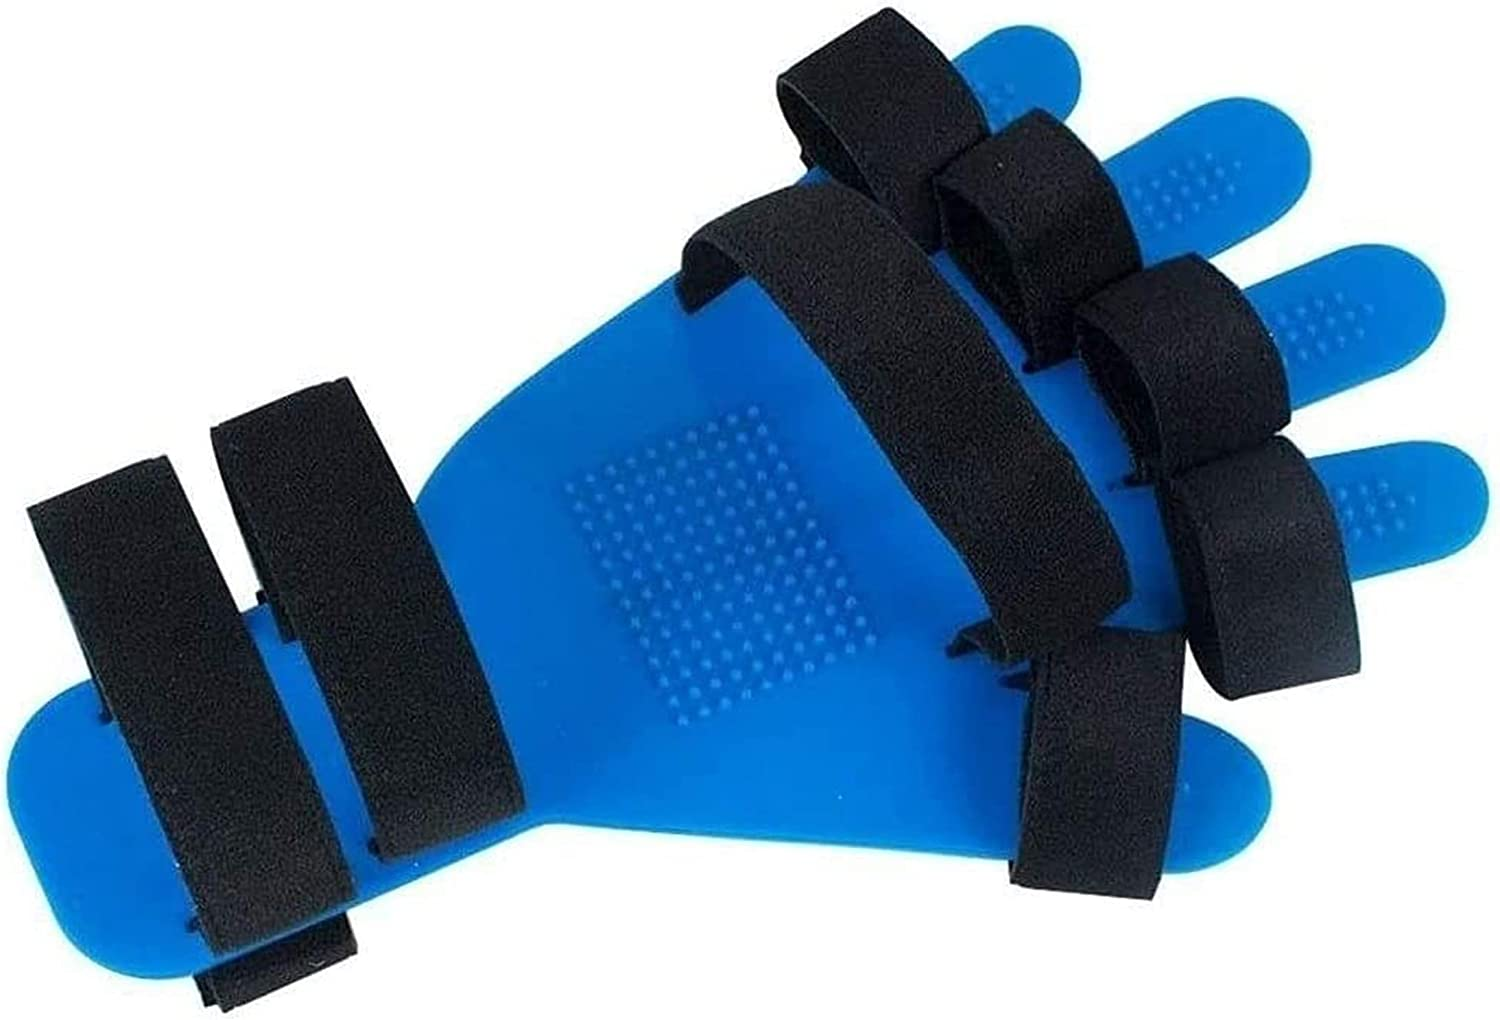 FGUD Finger Splint Fingerboard Training Sepa Silica Board Easy-to-use Challenge the lowest price of Japan